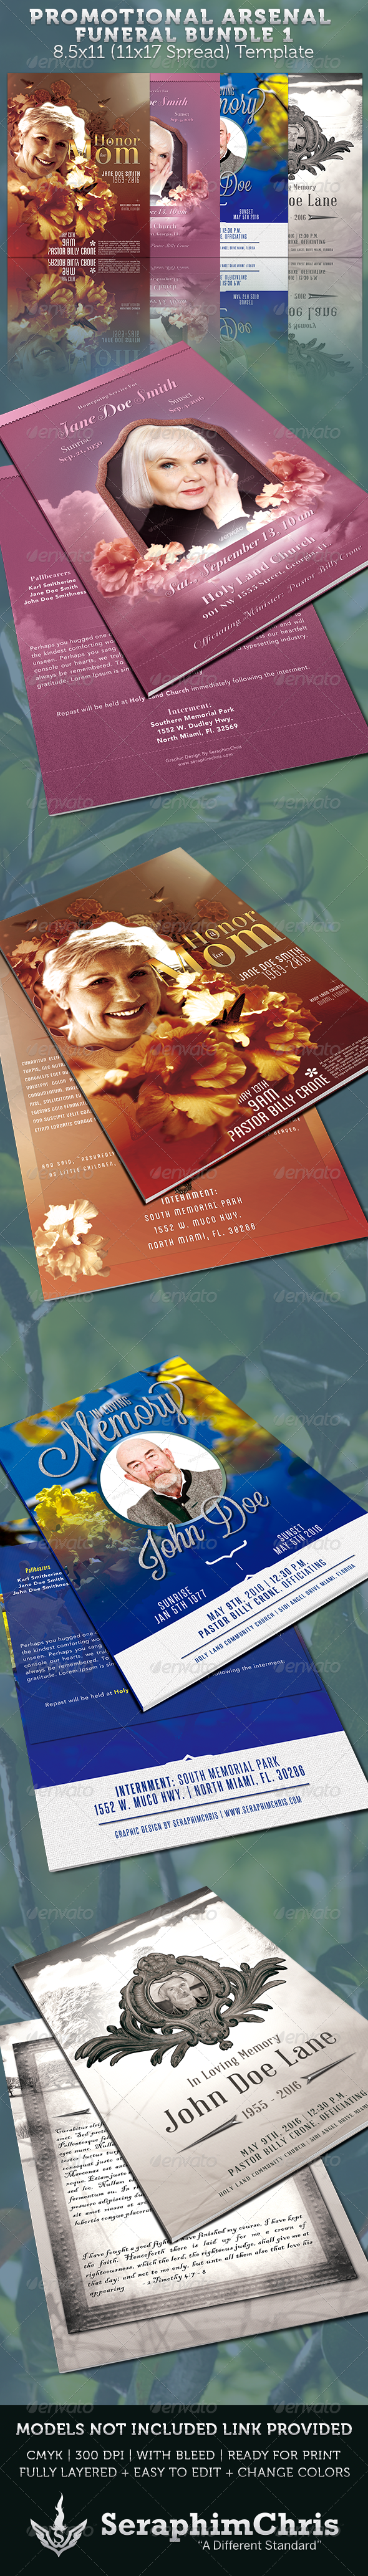 Promotional Arsenal Funeral Program Bundle 1 - Informational Brochures